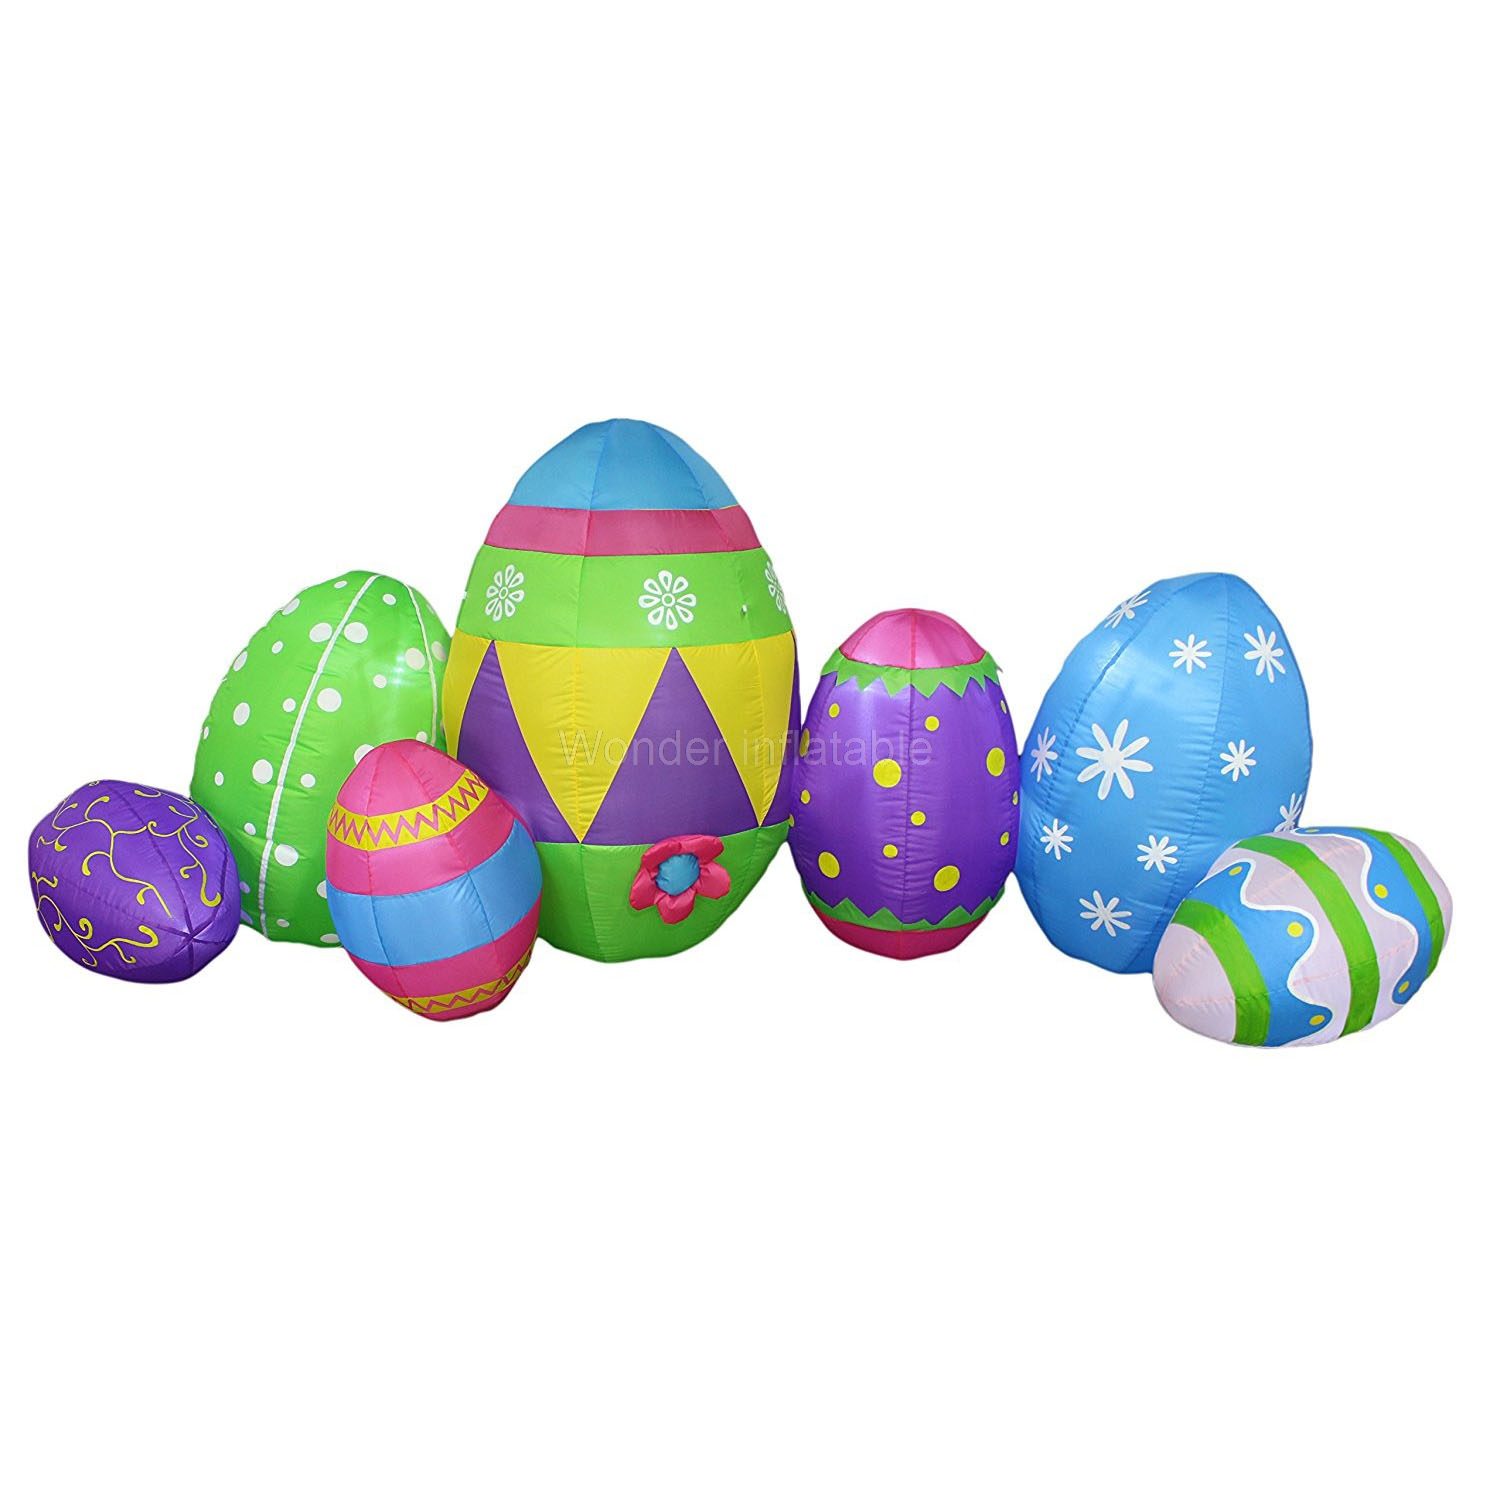 Us 680 0 Party Supplies 7eggs Pack 4mlong Airblown Colorful Giant Inflatable Easter Eggs For Yard Decoration In Party Diy Decorations From Home